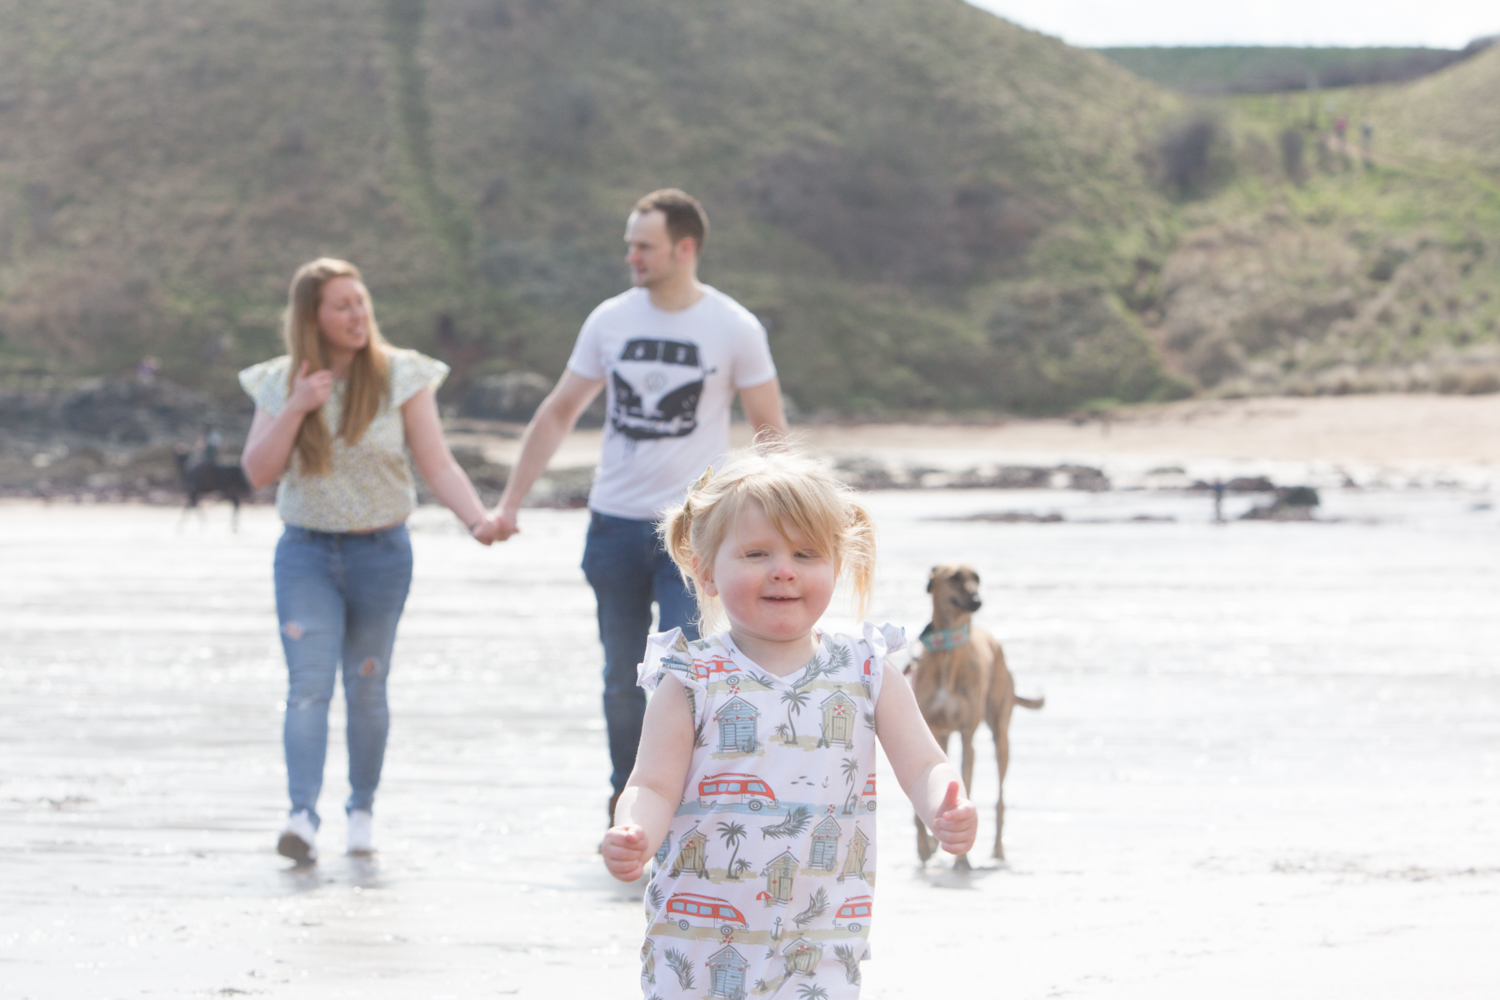 PICTORIAL_BERWICK_pre-wedding-family-couple-shoot-beach-coldingham-bay-birthday-dogs-grandparents-0623.jpg